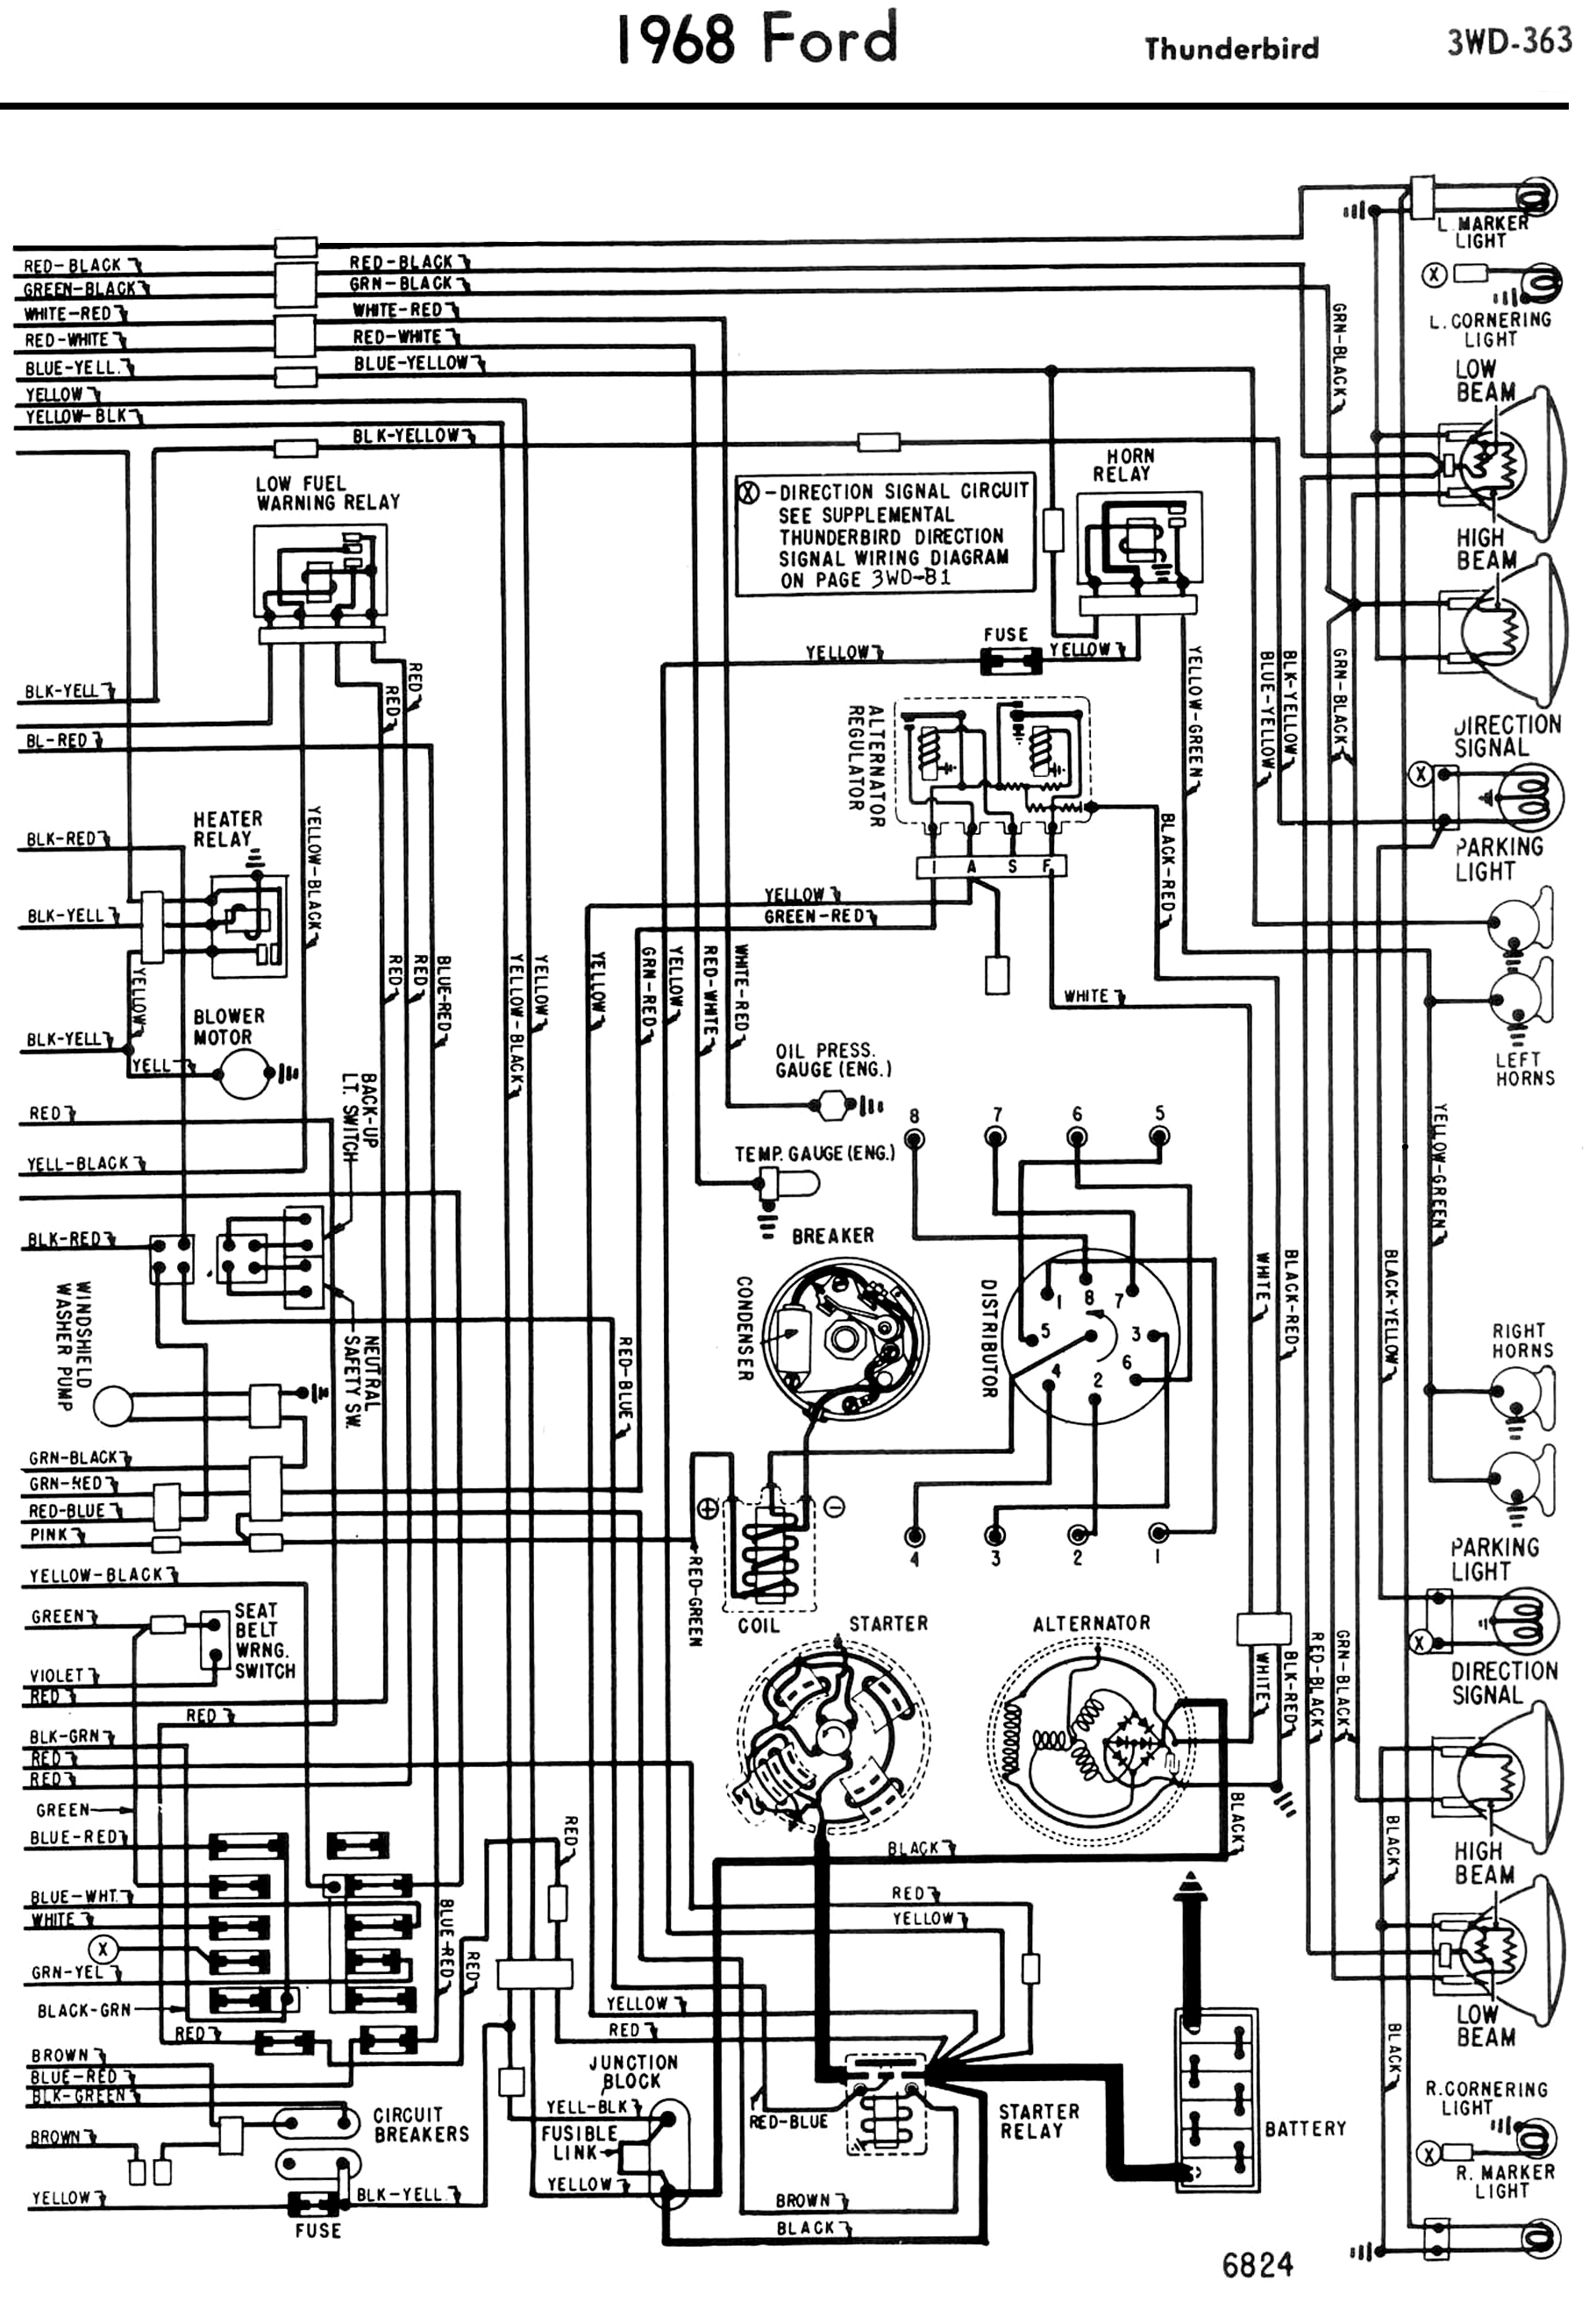 68_wiring_diagram RH 1958 68 ford electrical schematics 1965 thunderbird wiring harness at alyssarenee.co